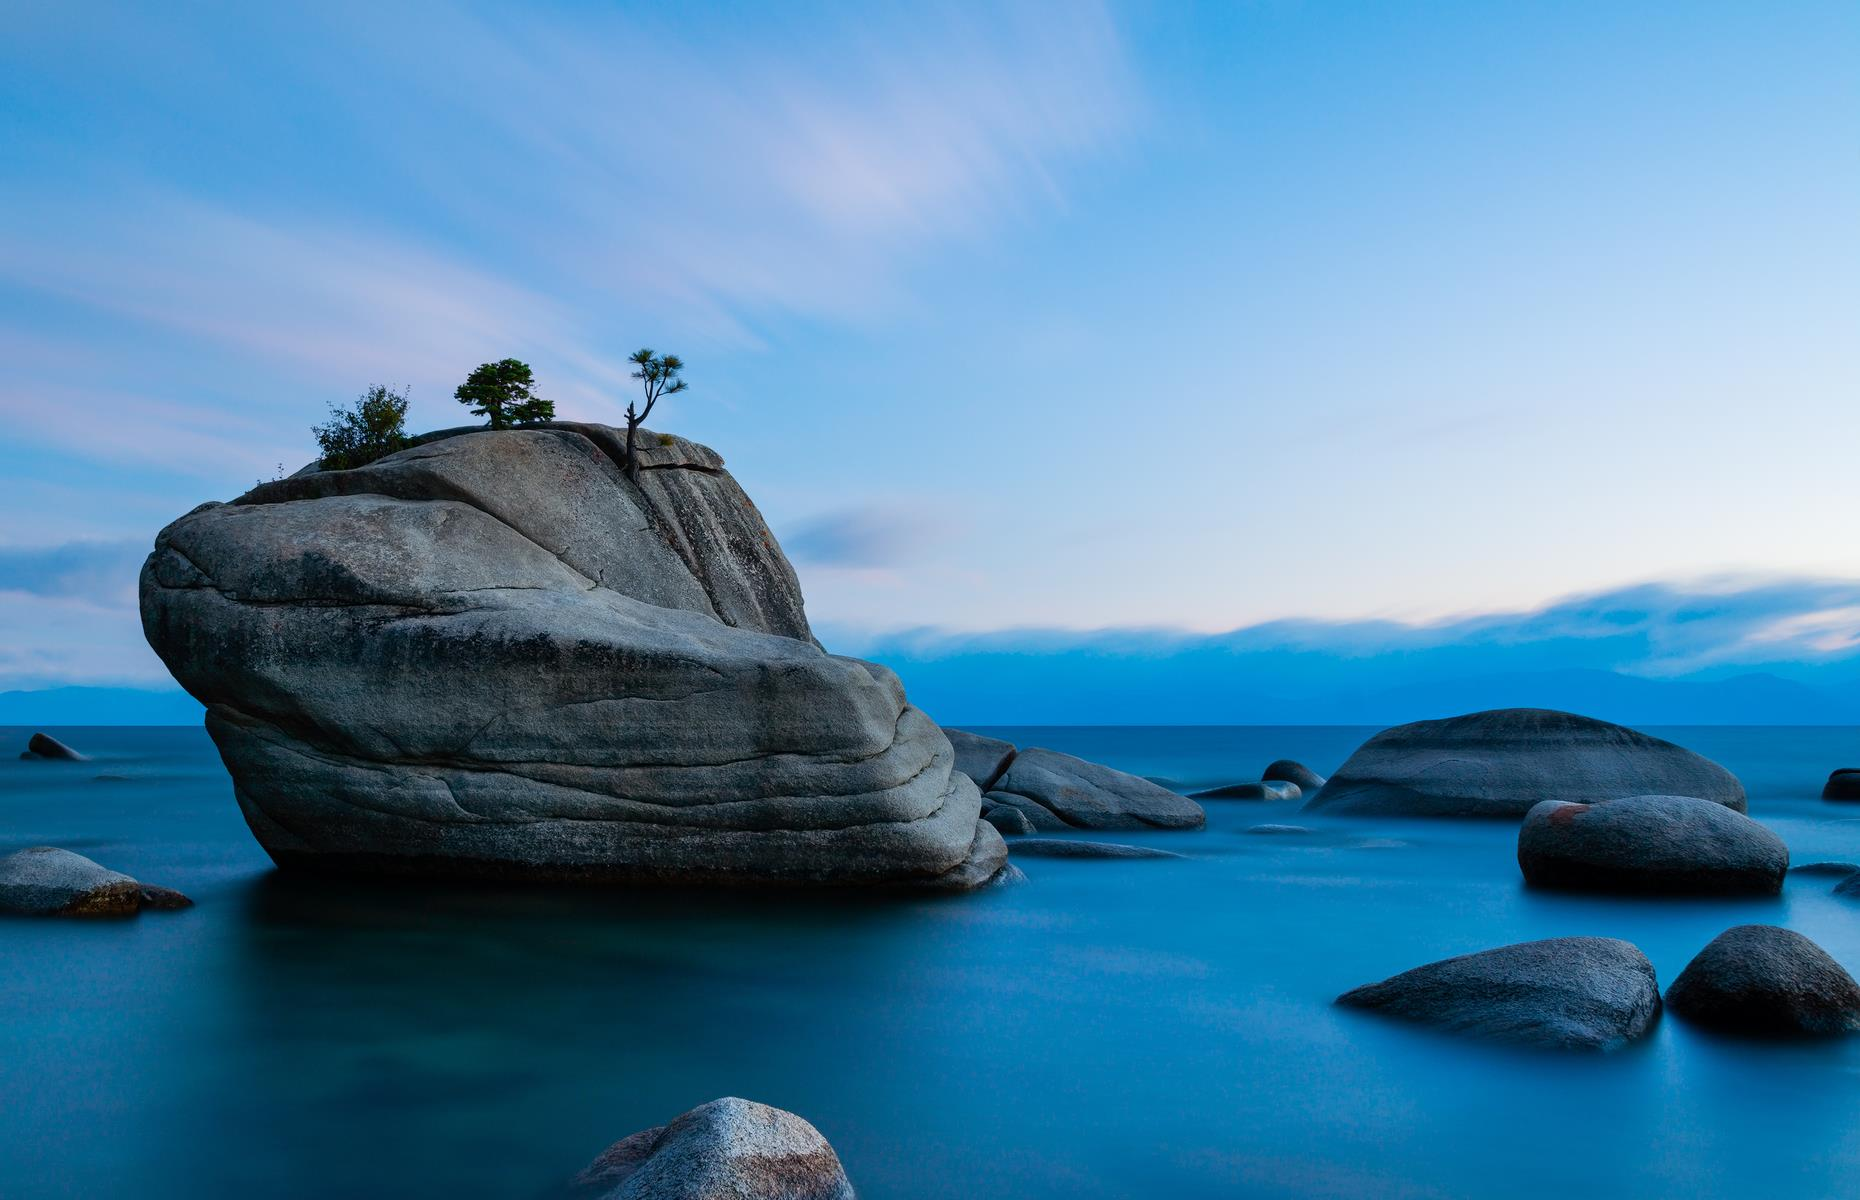 Slide 15 of 61: The perfect subject for keen photographers, Bonsai Rock is an eye-catching crag on the Nevada portion of Lake Tahoe. Four little trees sprout from the hulking rock and it's reached by a brief but steep hike towards the waters. Come at sunrise or sunset for spectacular shots, and remain after dark to see the clear skies filled with stars.